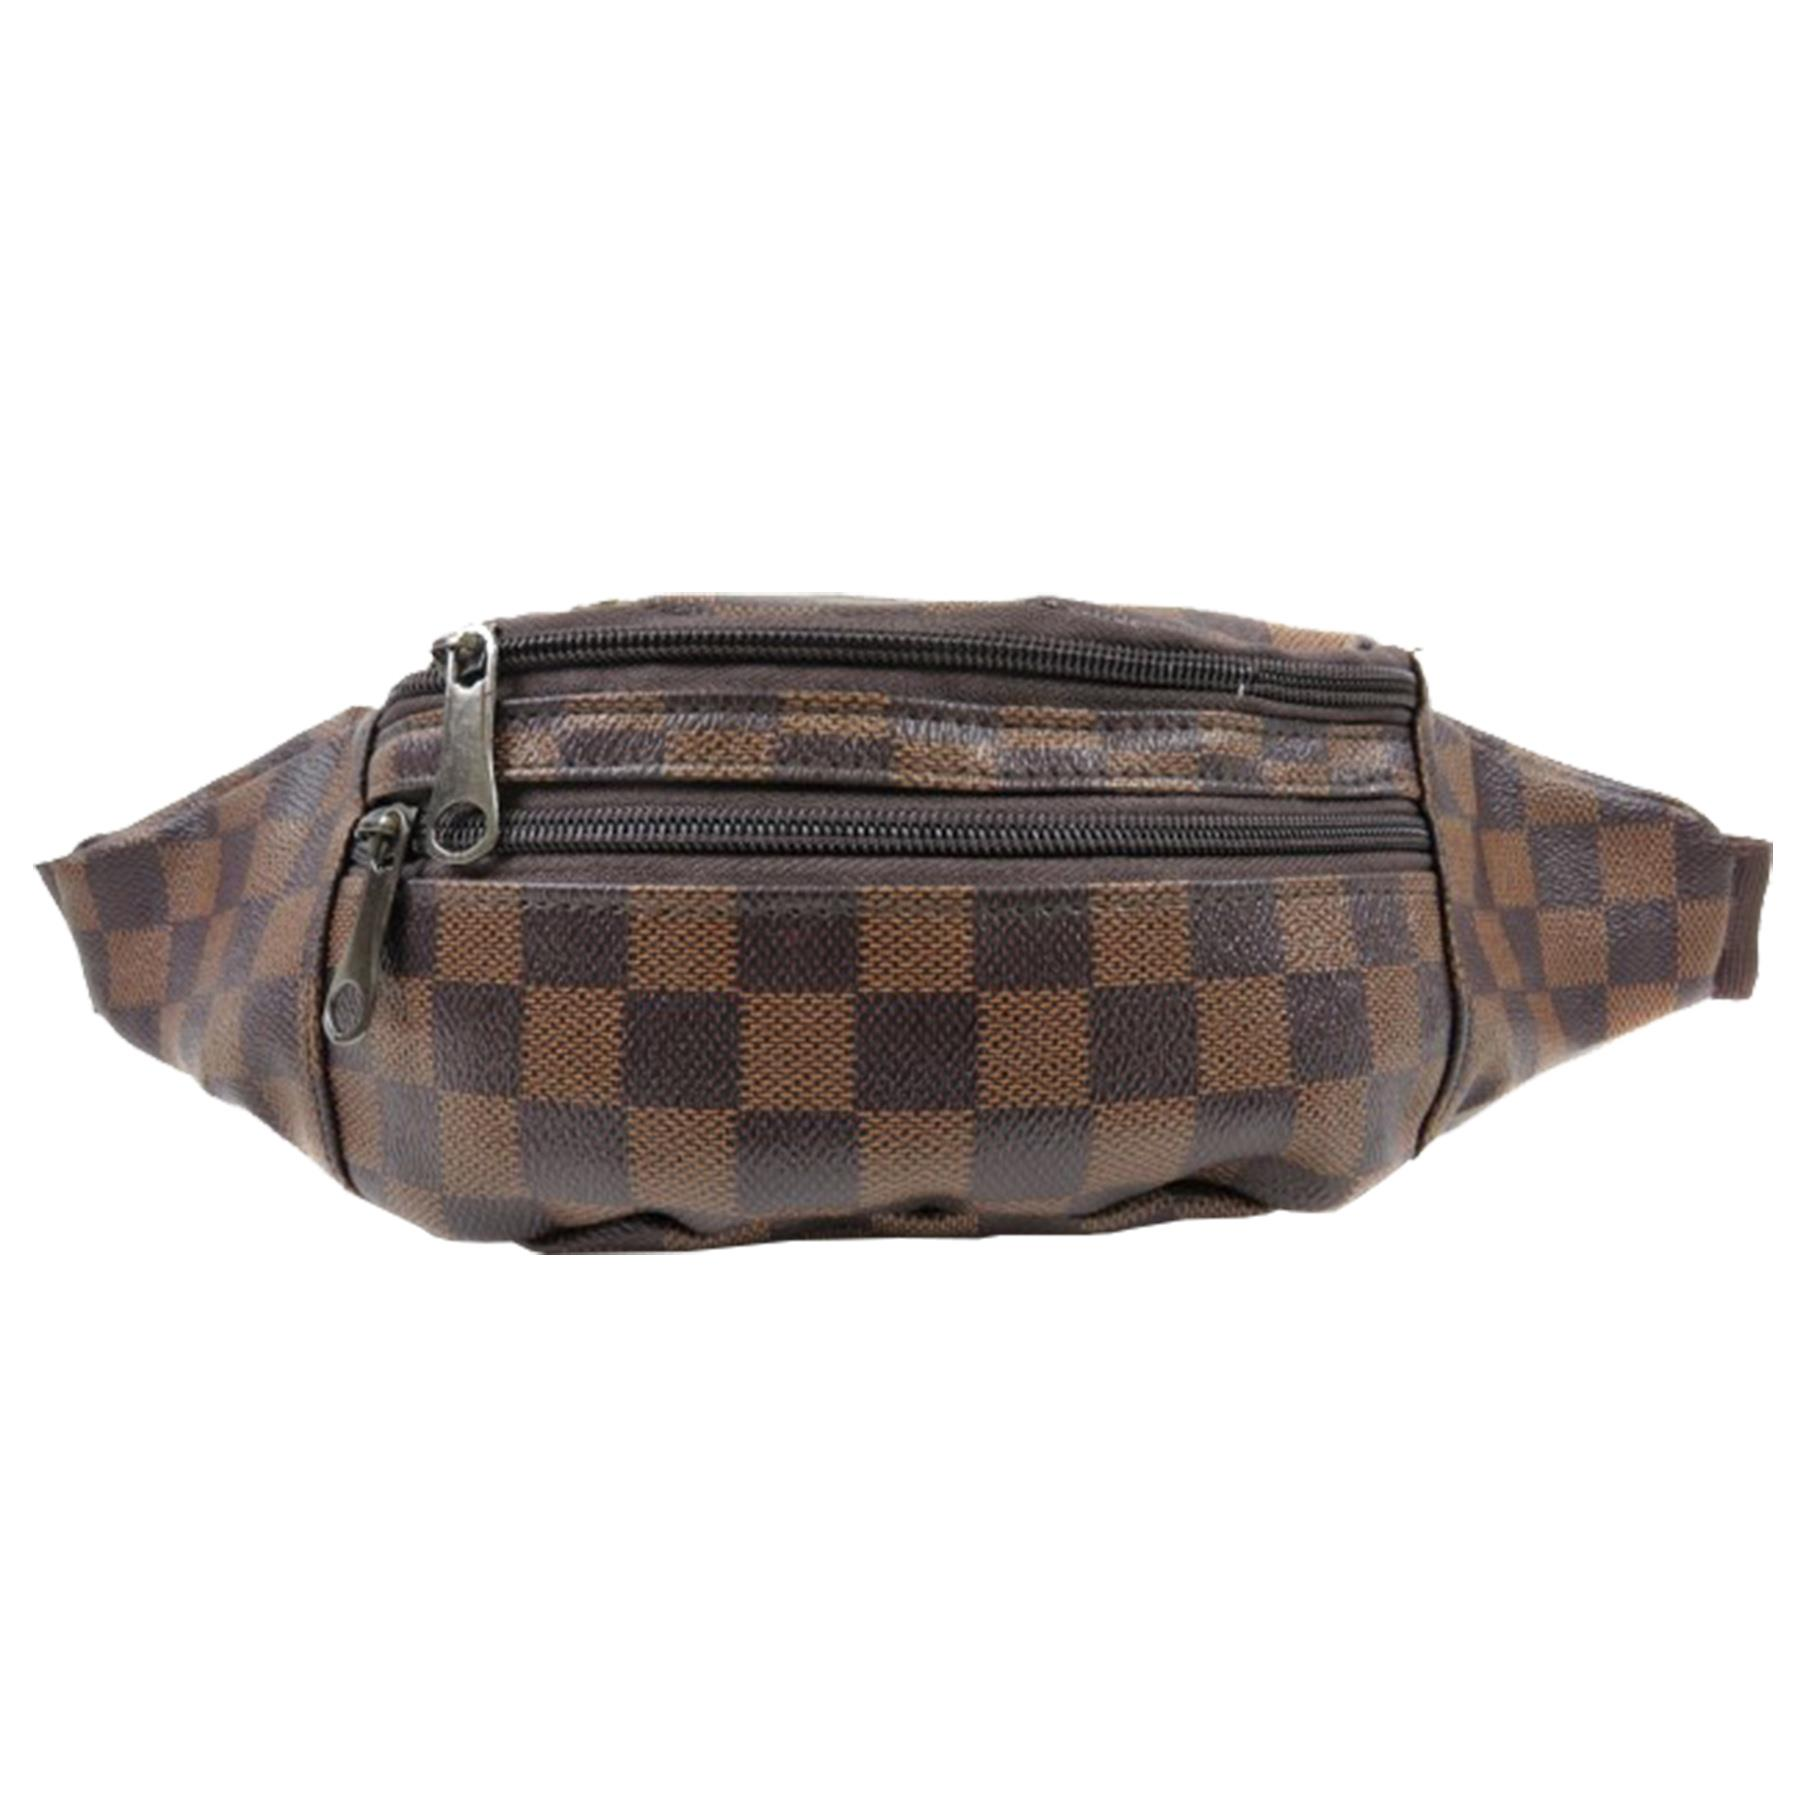 New-Women-s-Checked-Design-Synthetic-Leather-Fashion-Bum-Hip-Belt-Bag thumbnail 3